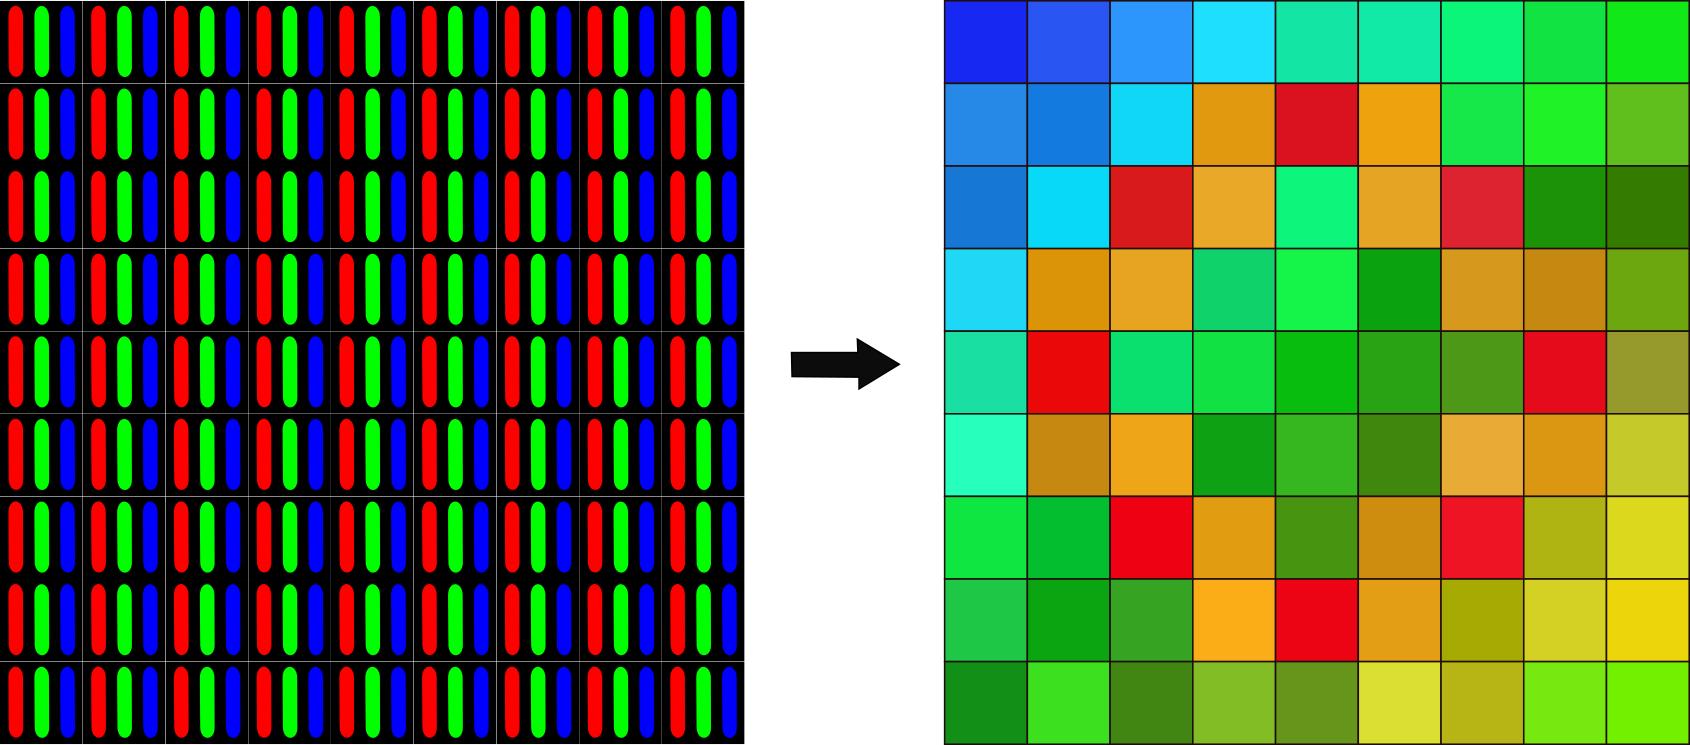 An array of pixels composed of red, green, and blue LEDs